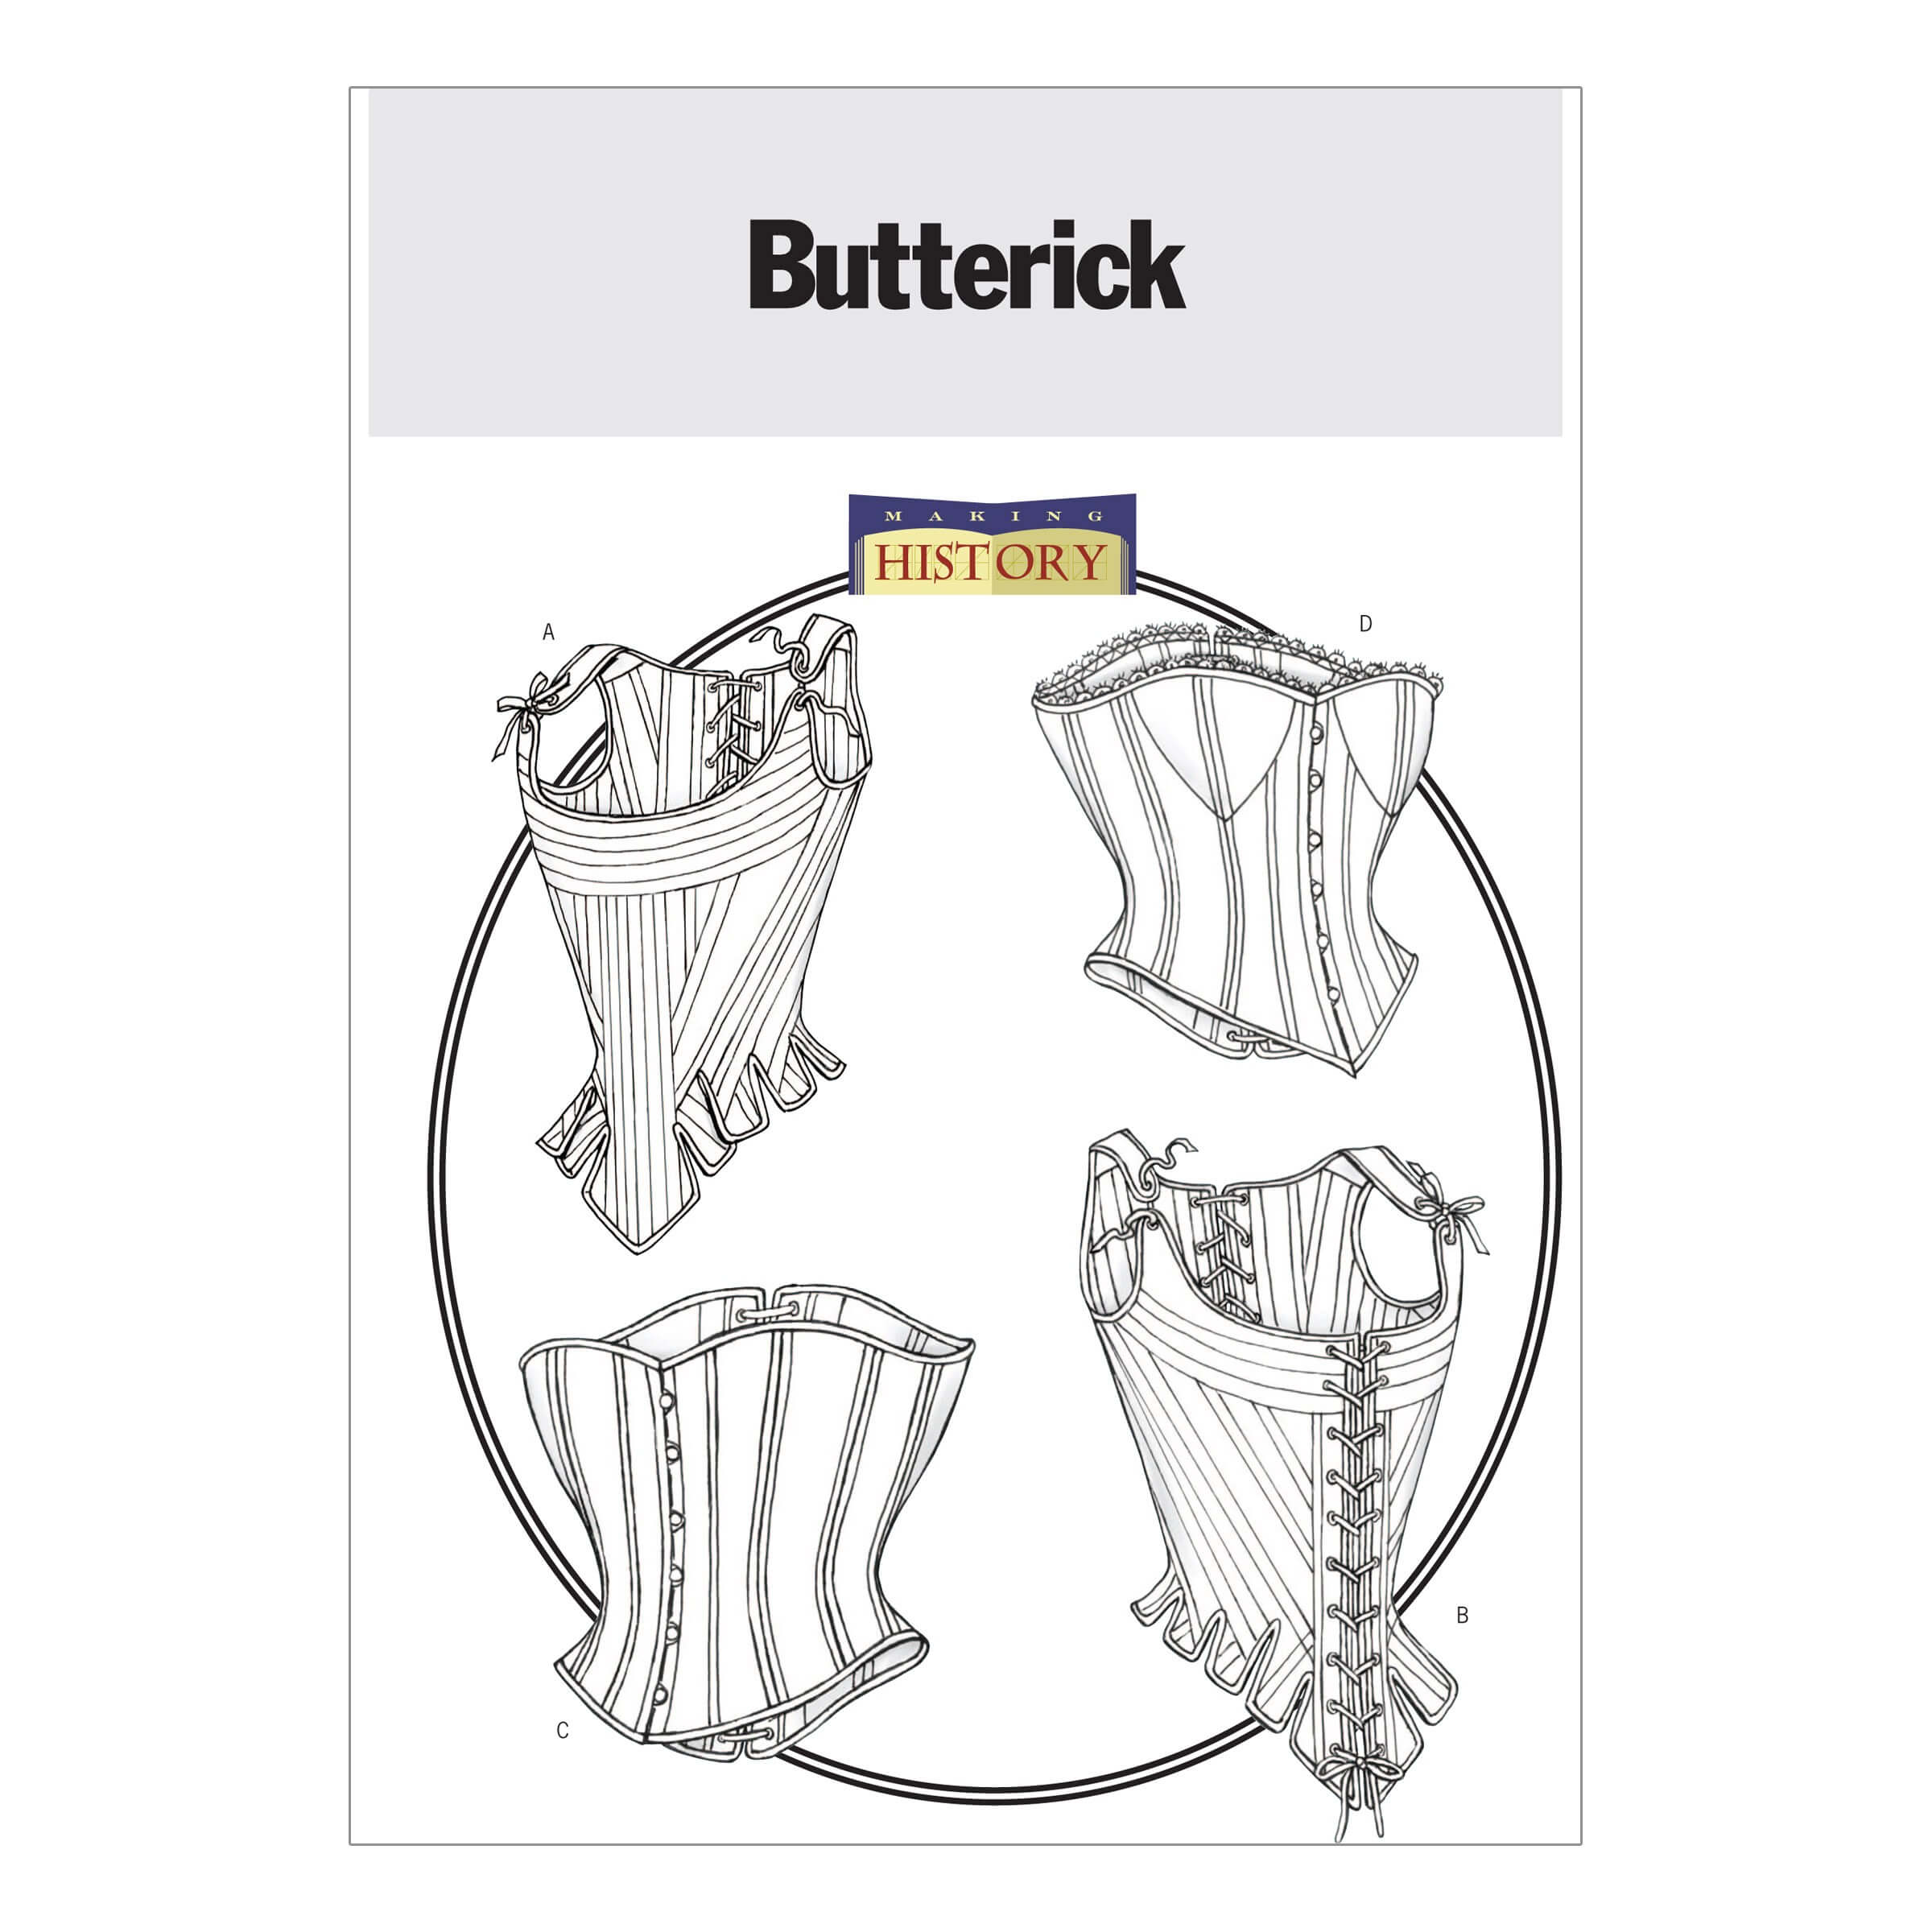 Butterick Sewing Pattern 4254 Misses' Historical Stays & Corsets Costume Cosplay